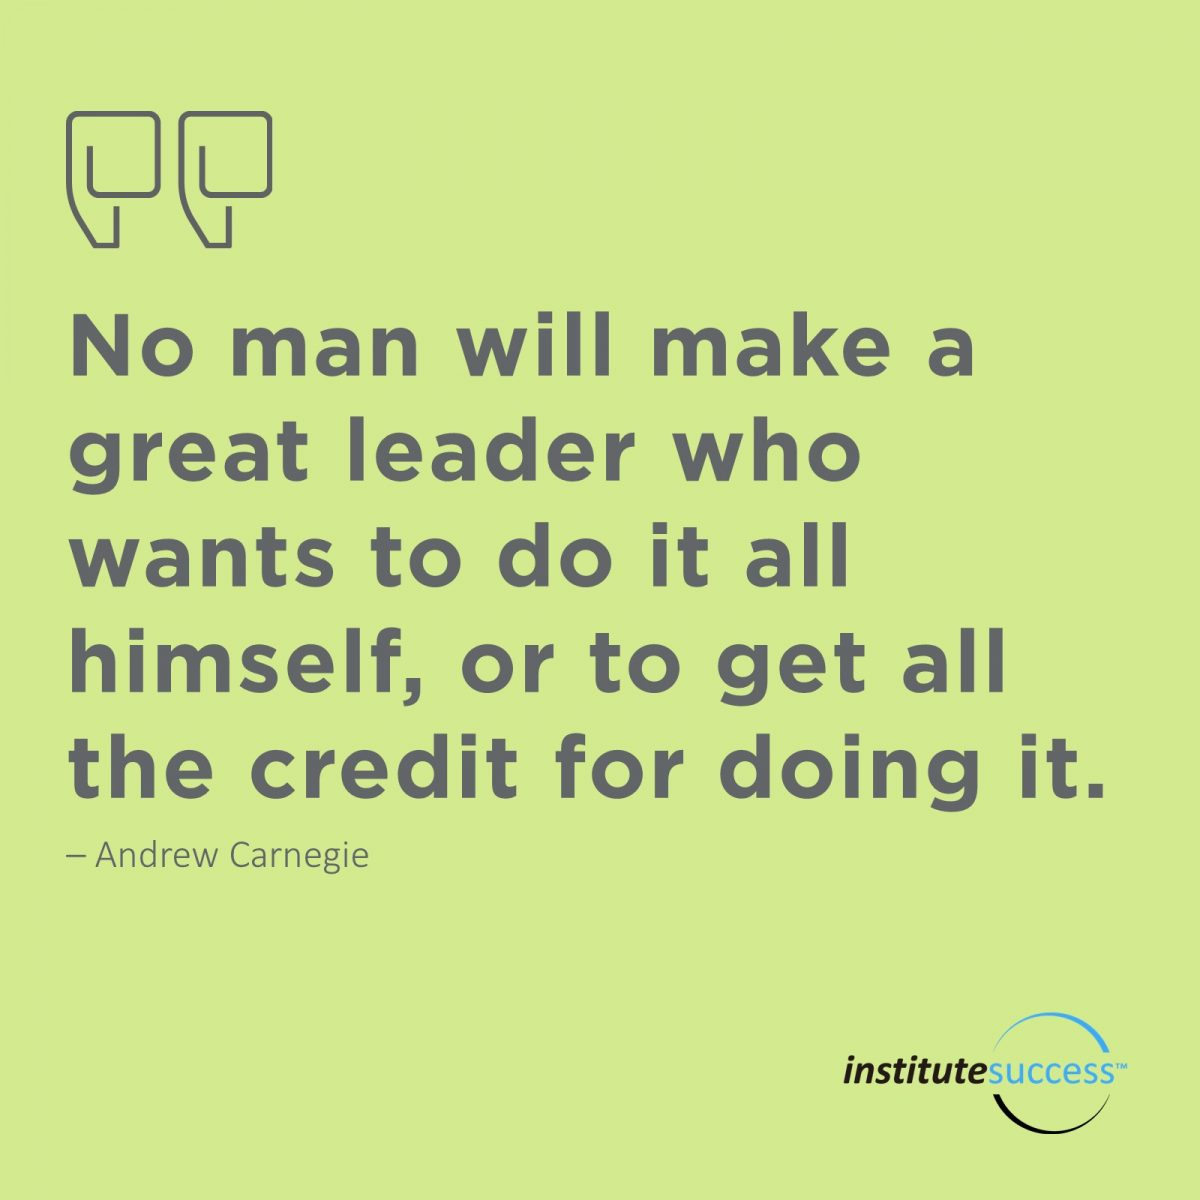 No man will make a great leader who wants to do it all himself, or to get all the credit for doing it. – Andrew Carnegie